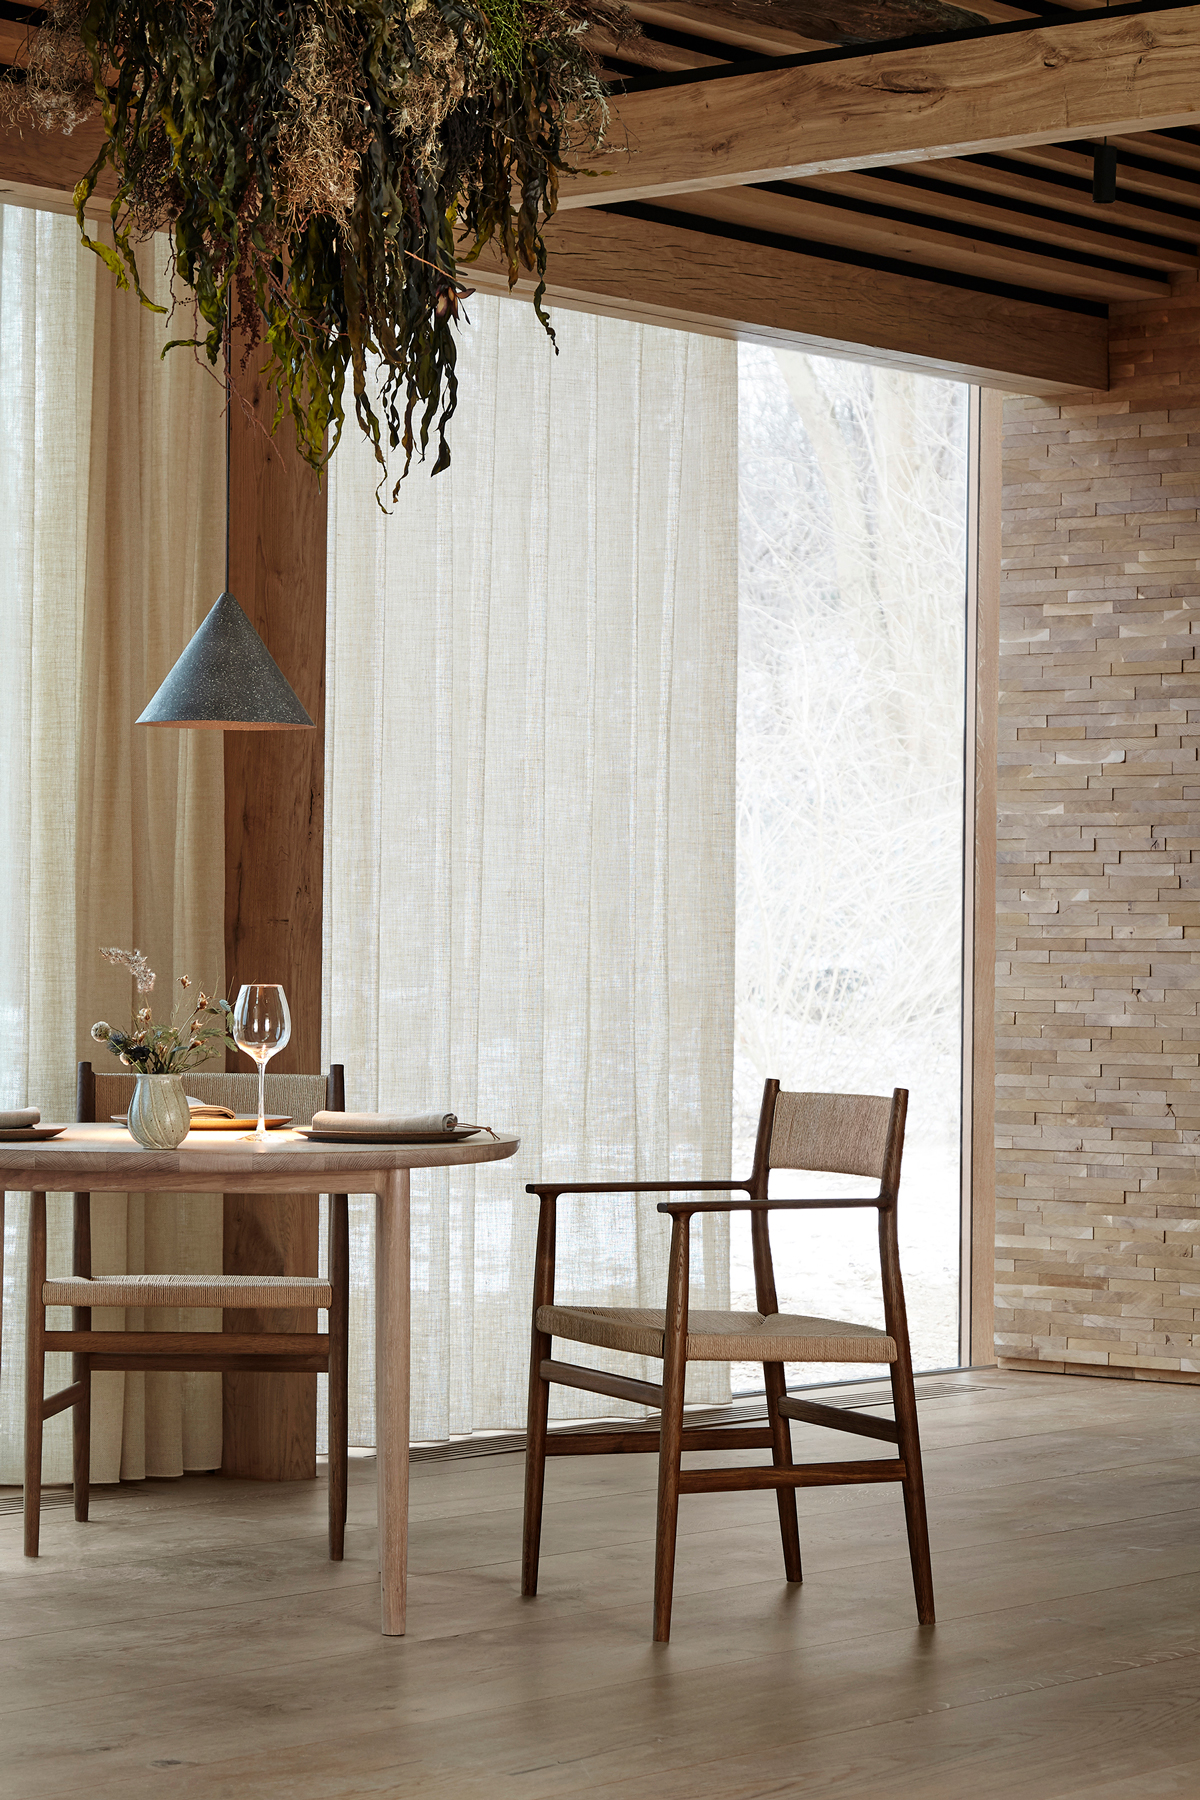 bring noma's natural style to your dining space